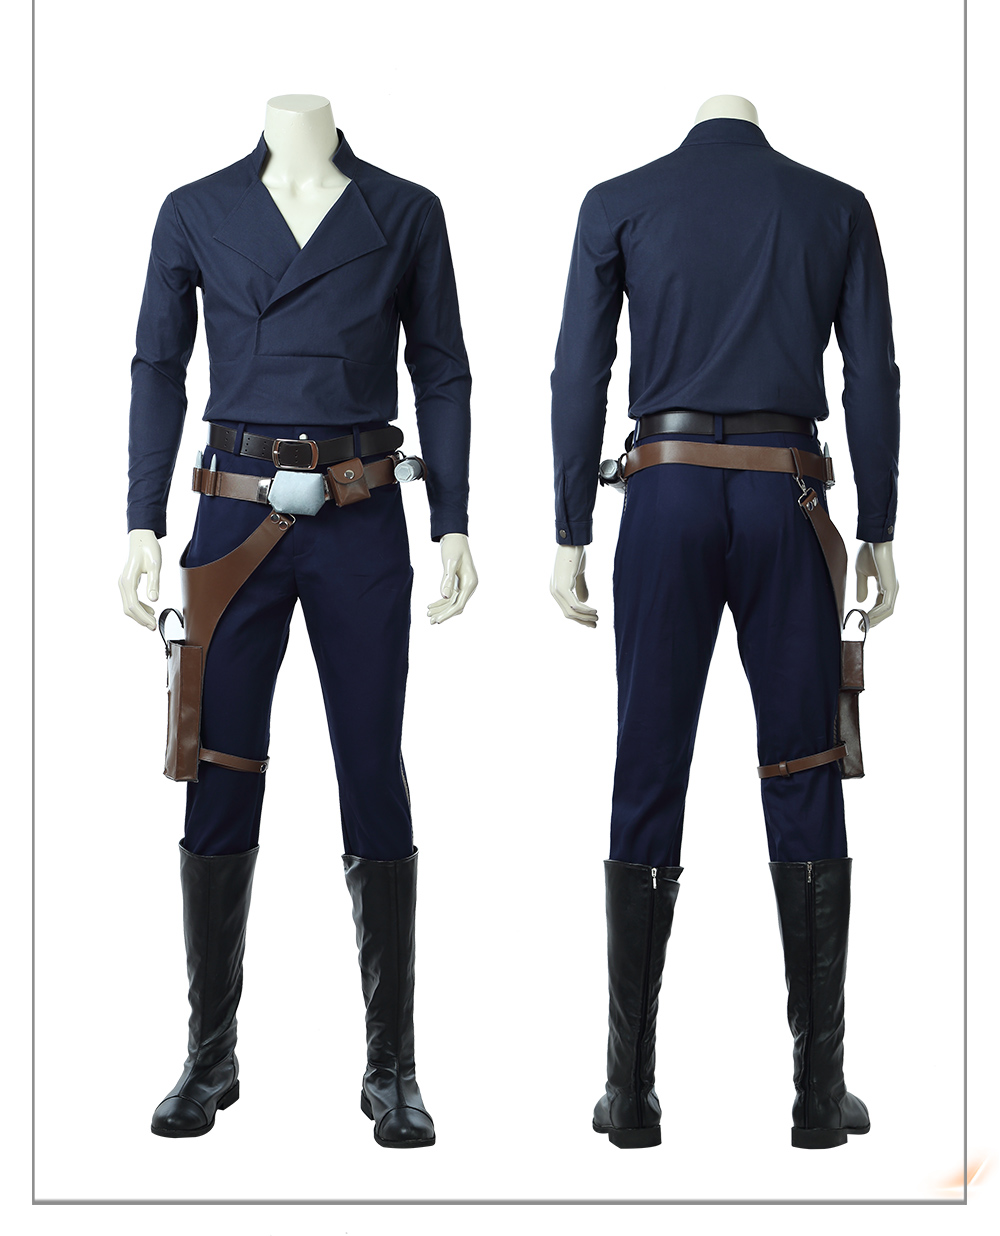 HZYM Star Wars The Last Jedi Luke Skywalker Cosplay Costume Full Set Halloween